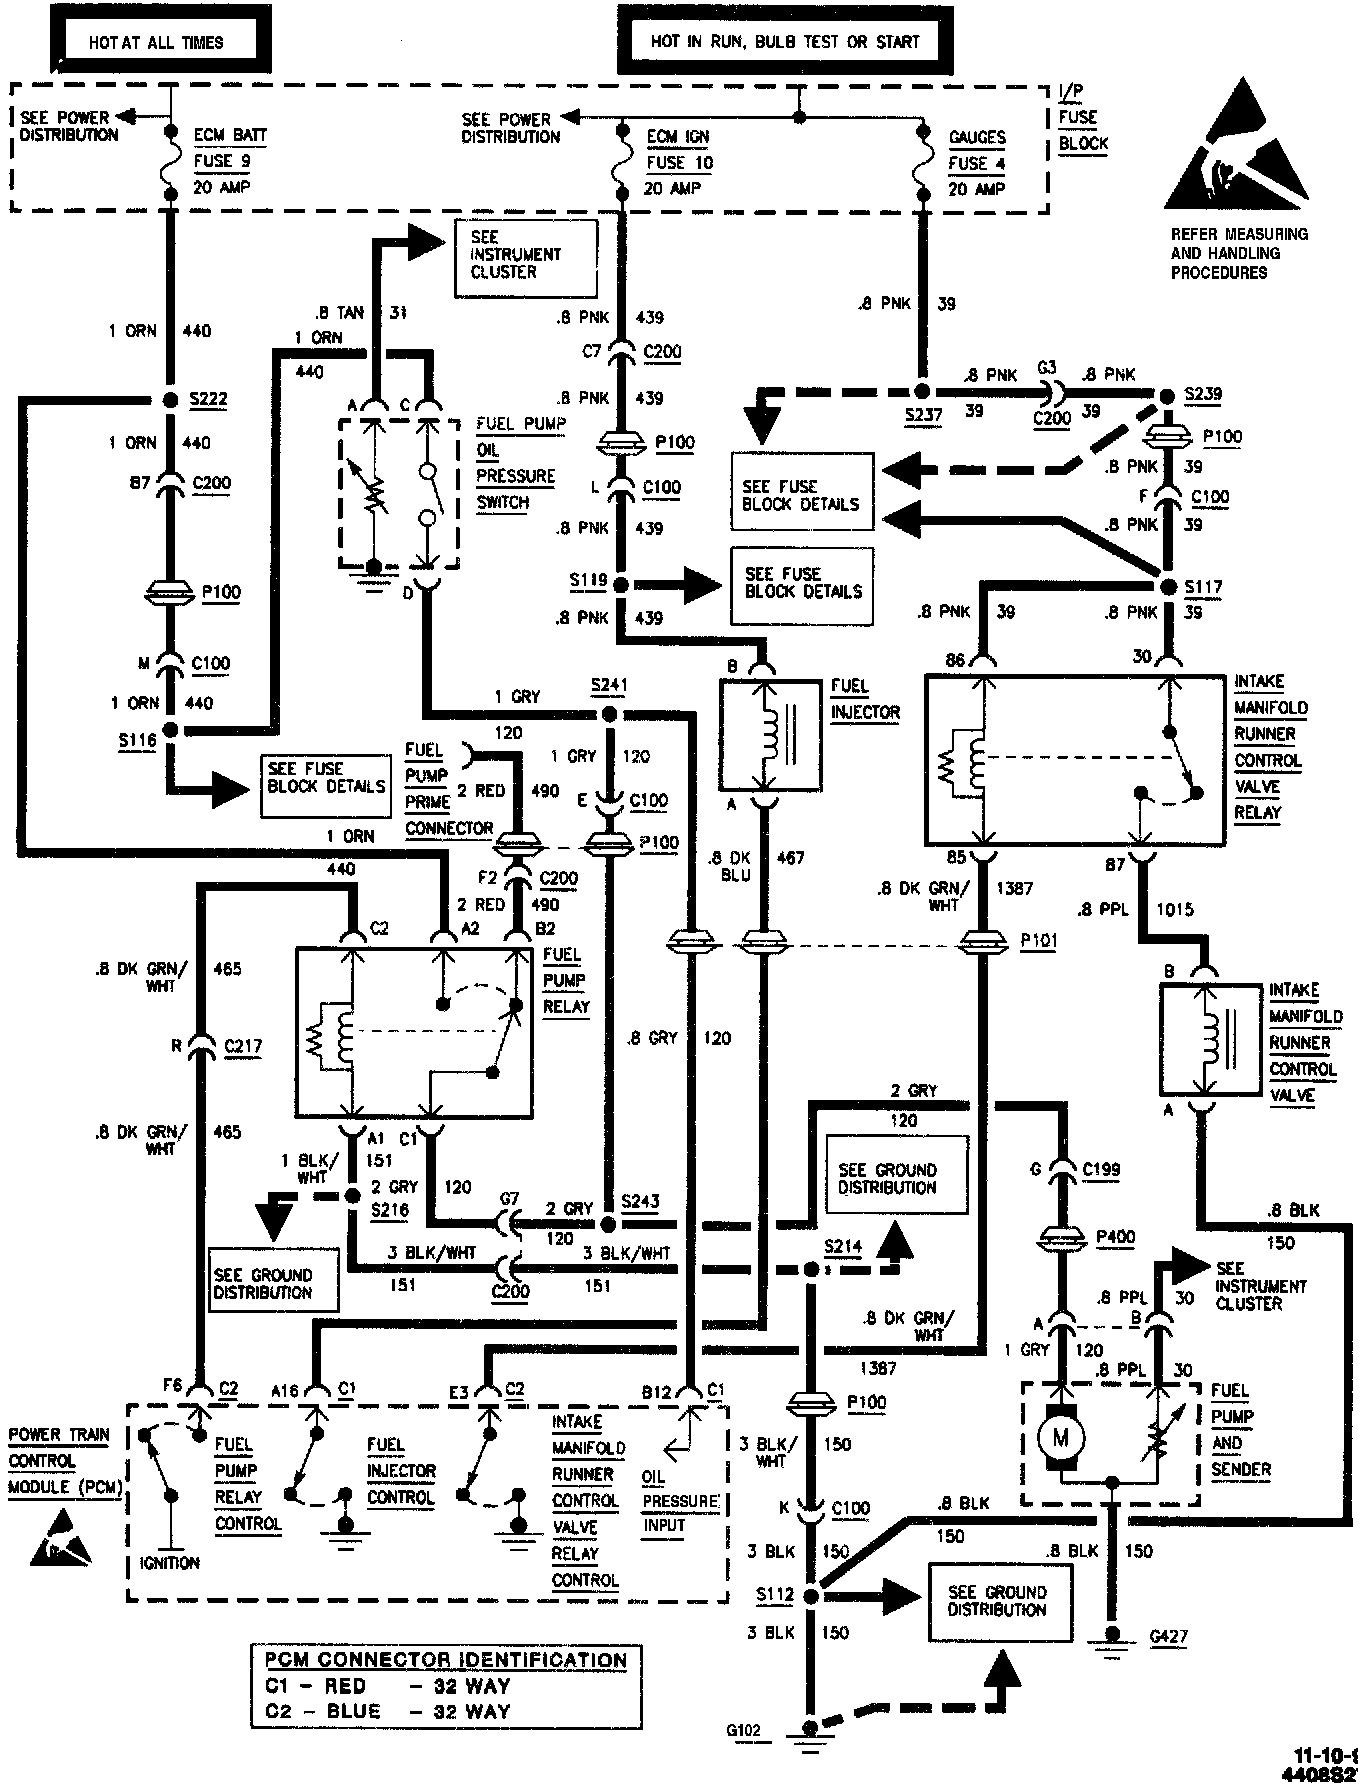 hight resolution of 1995 chevy camaro abs wiring diagram schematic wiring diagram 1995 chevy camaro abs wiring diagram